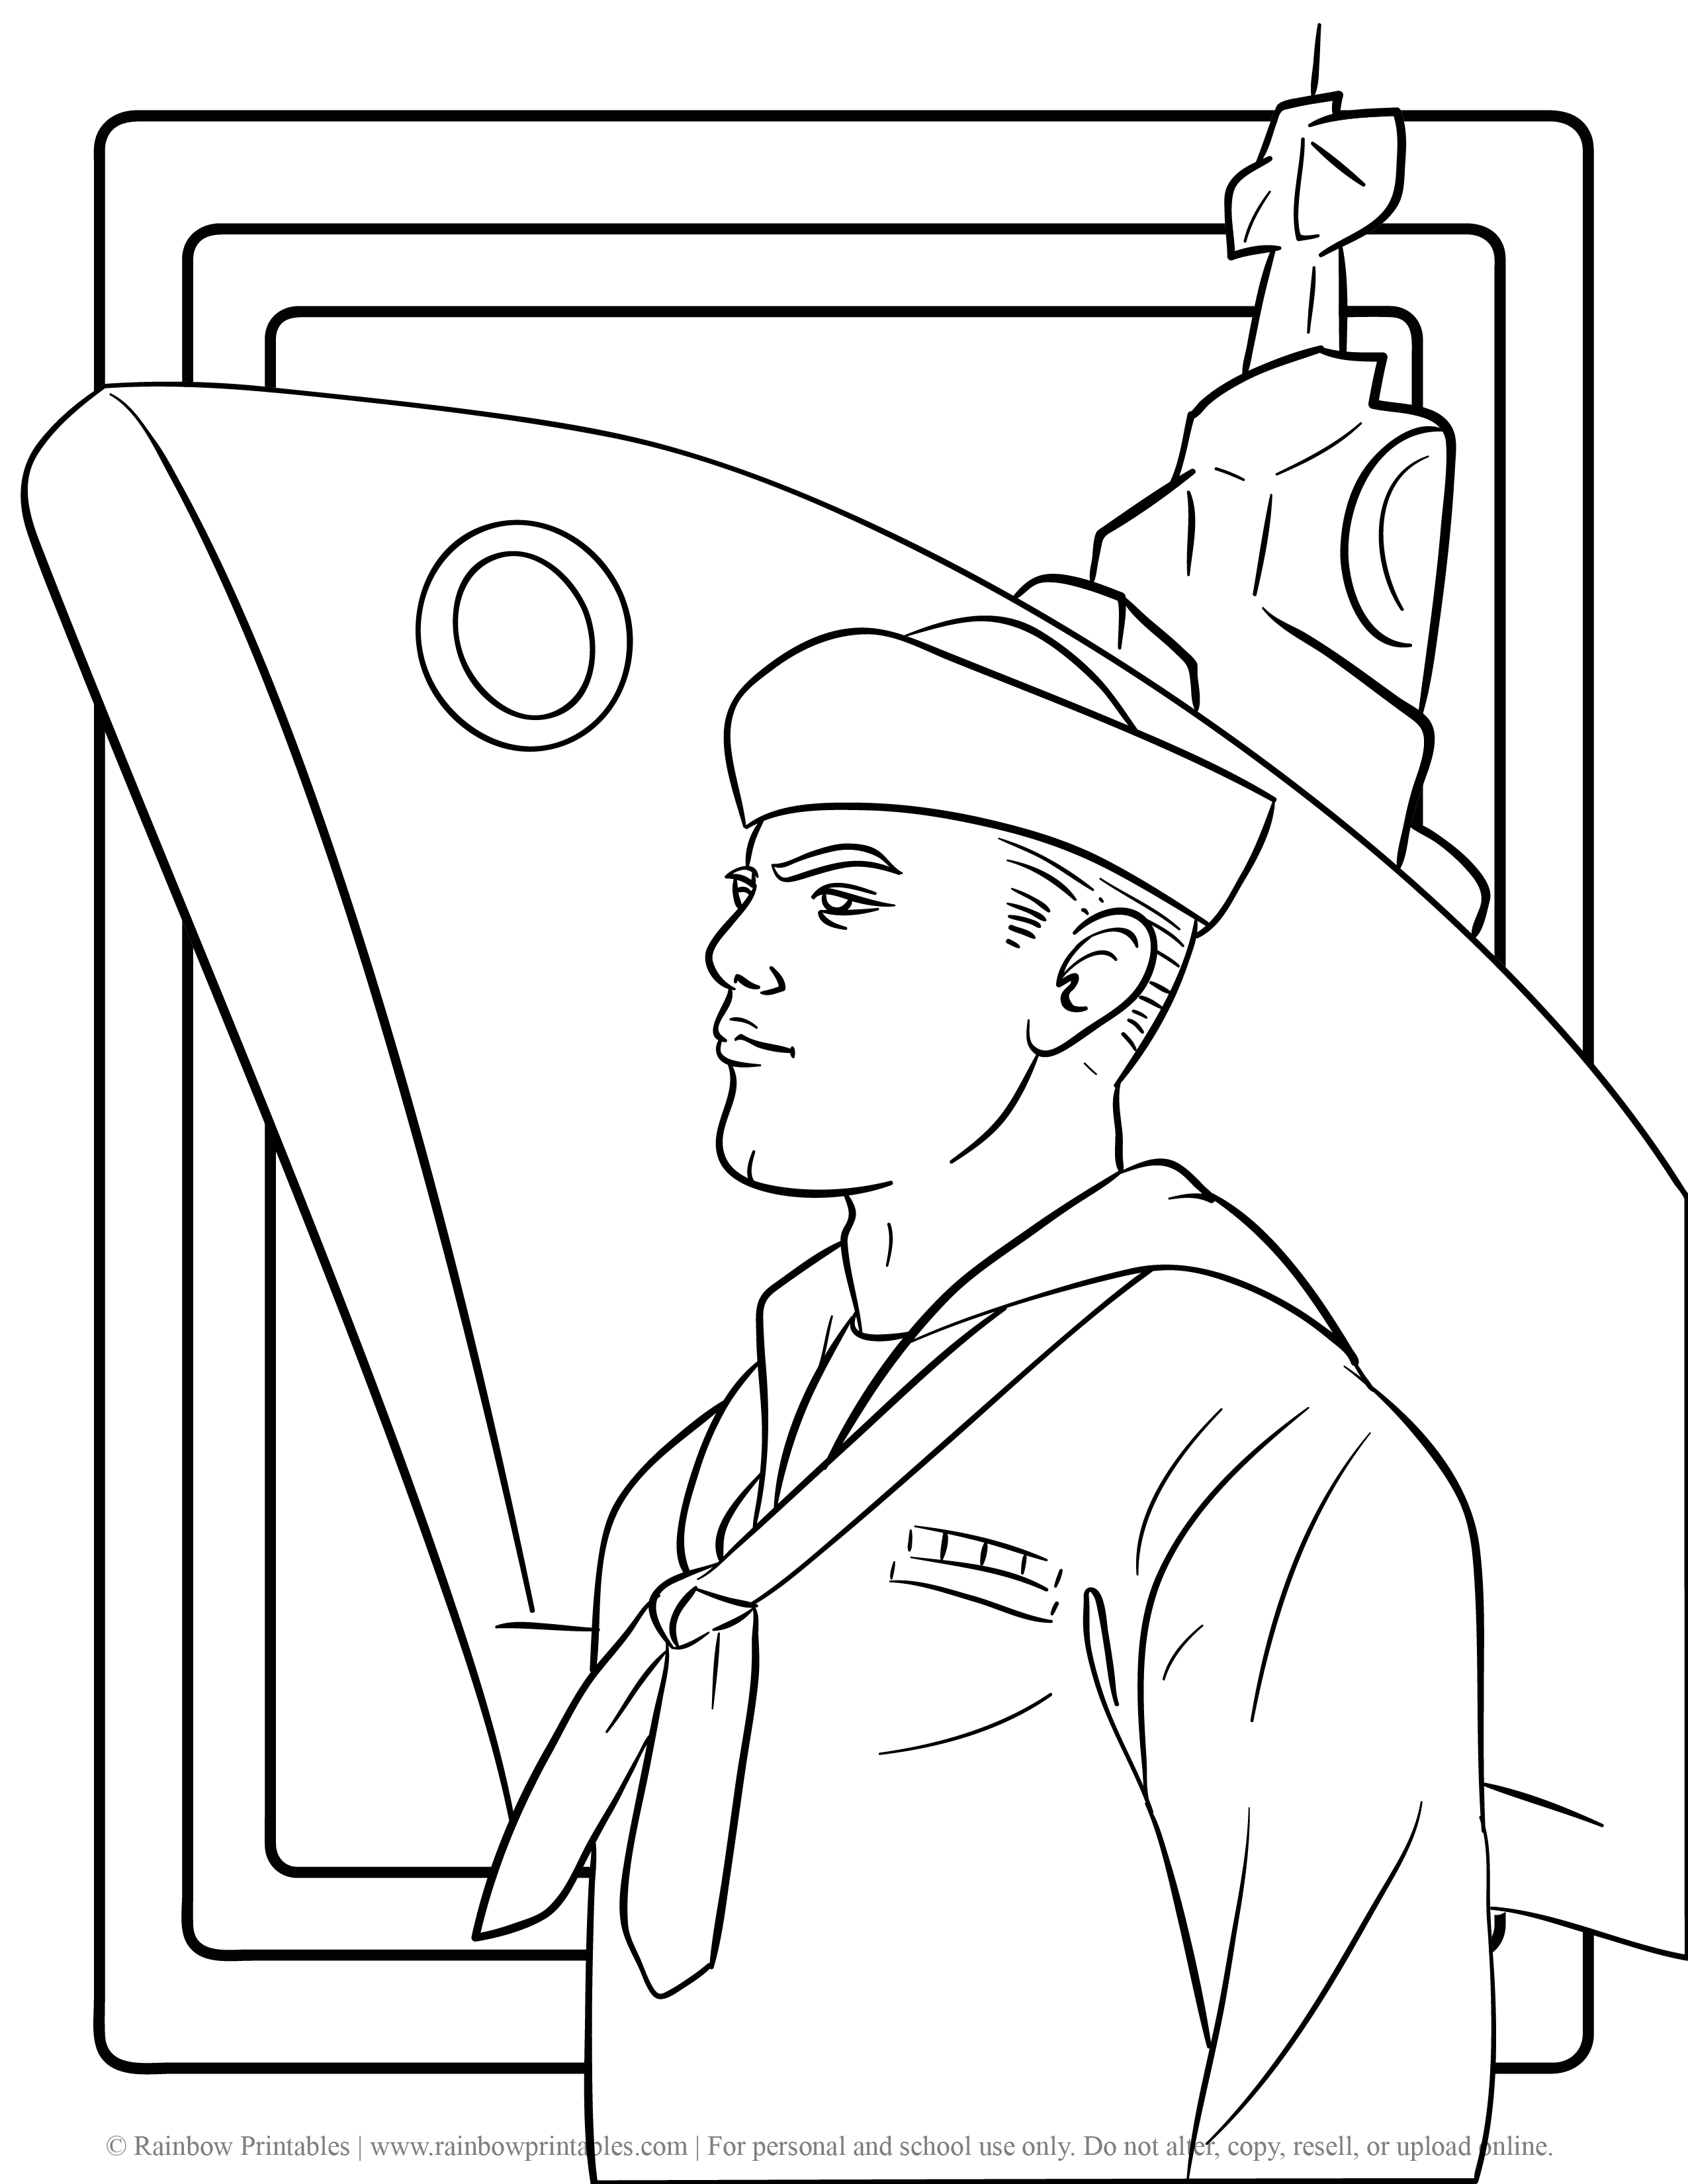 US American Soldier Army Navy Coloring Pages For Kids Patriotic July 4th Independence Day Simple Easy Salute